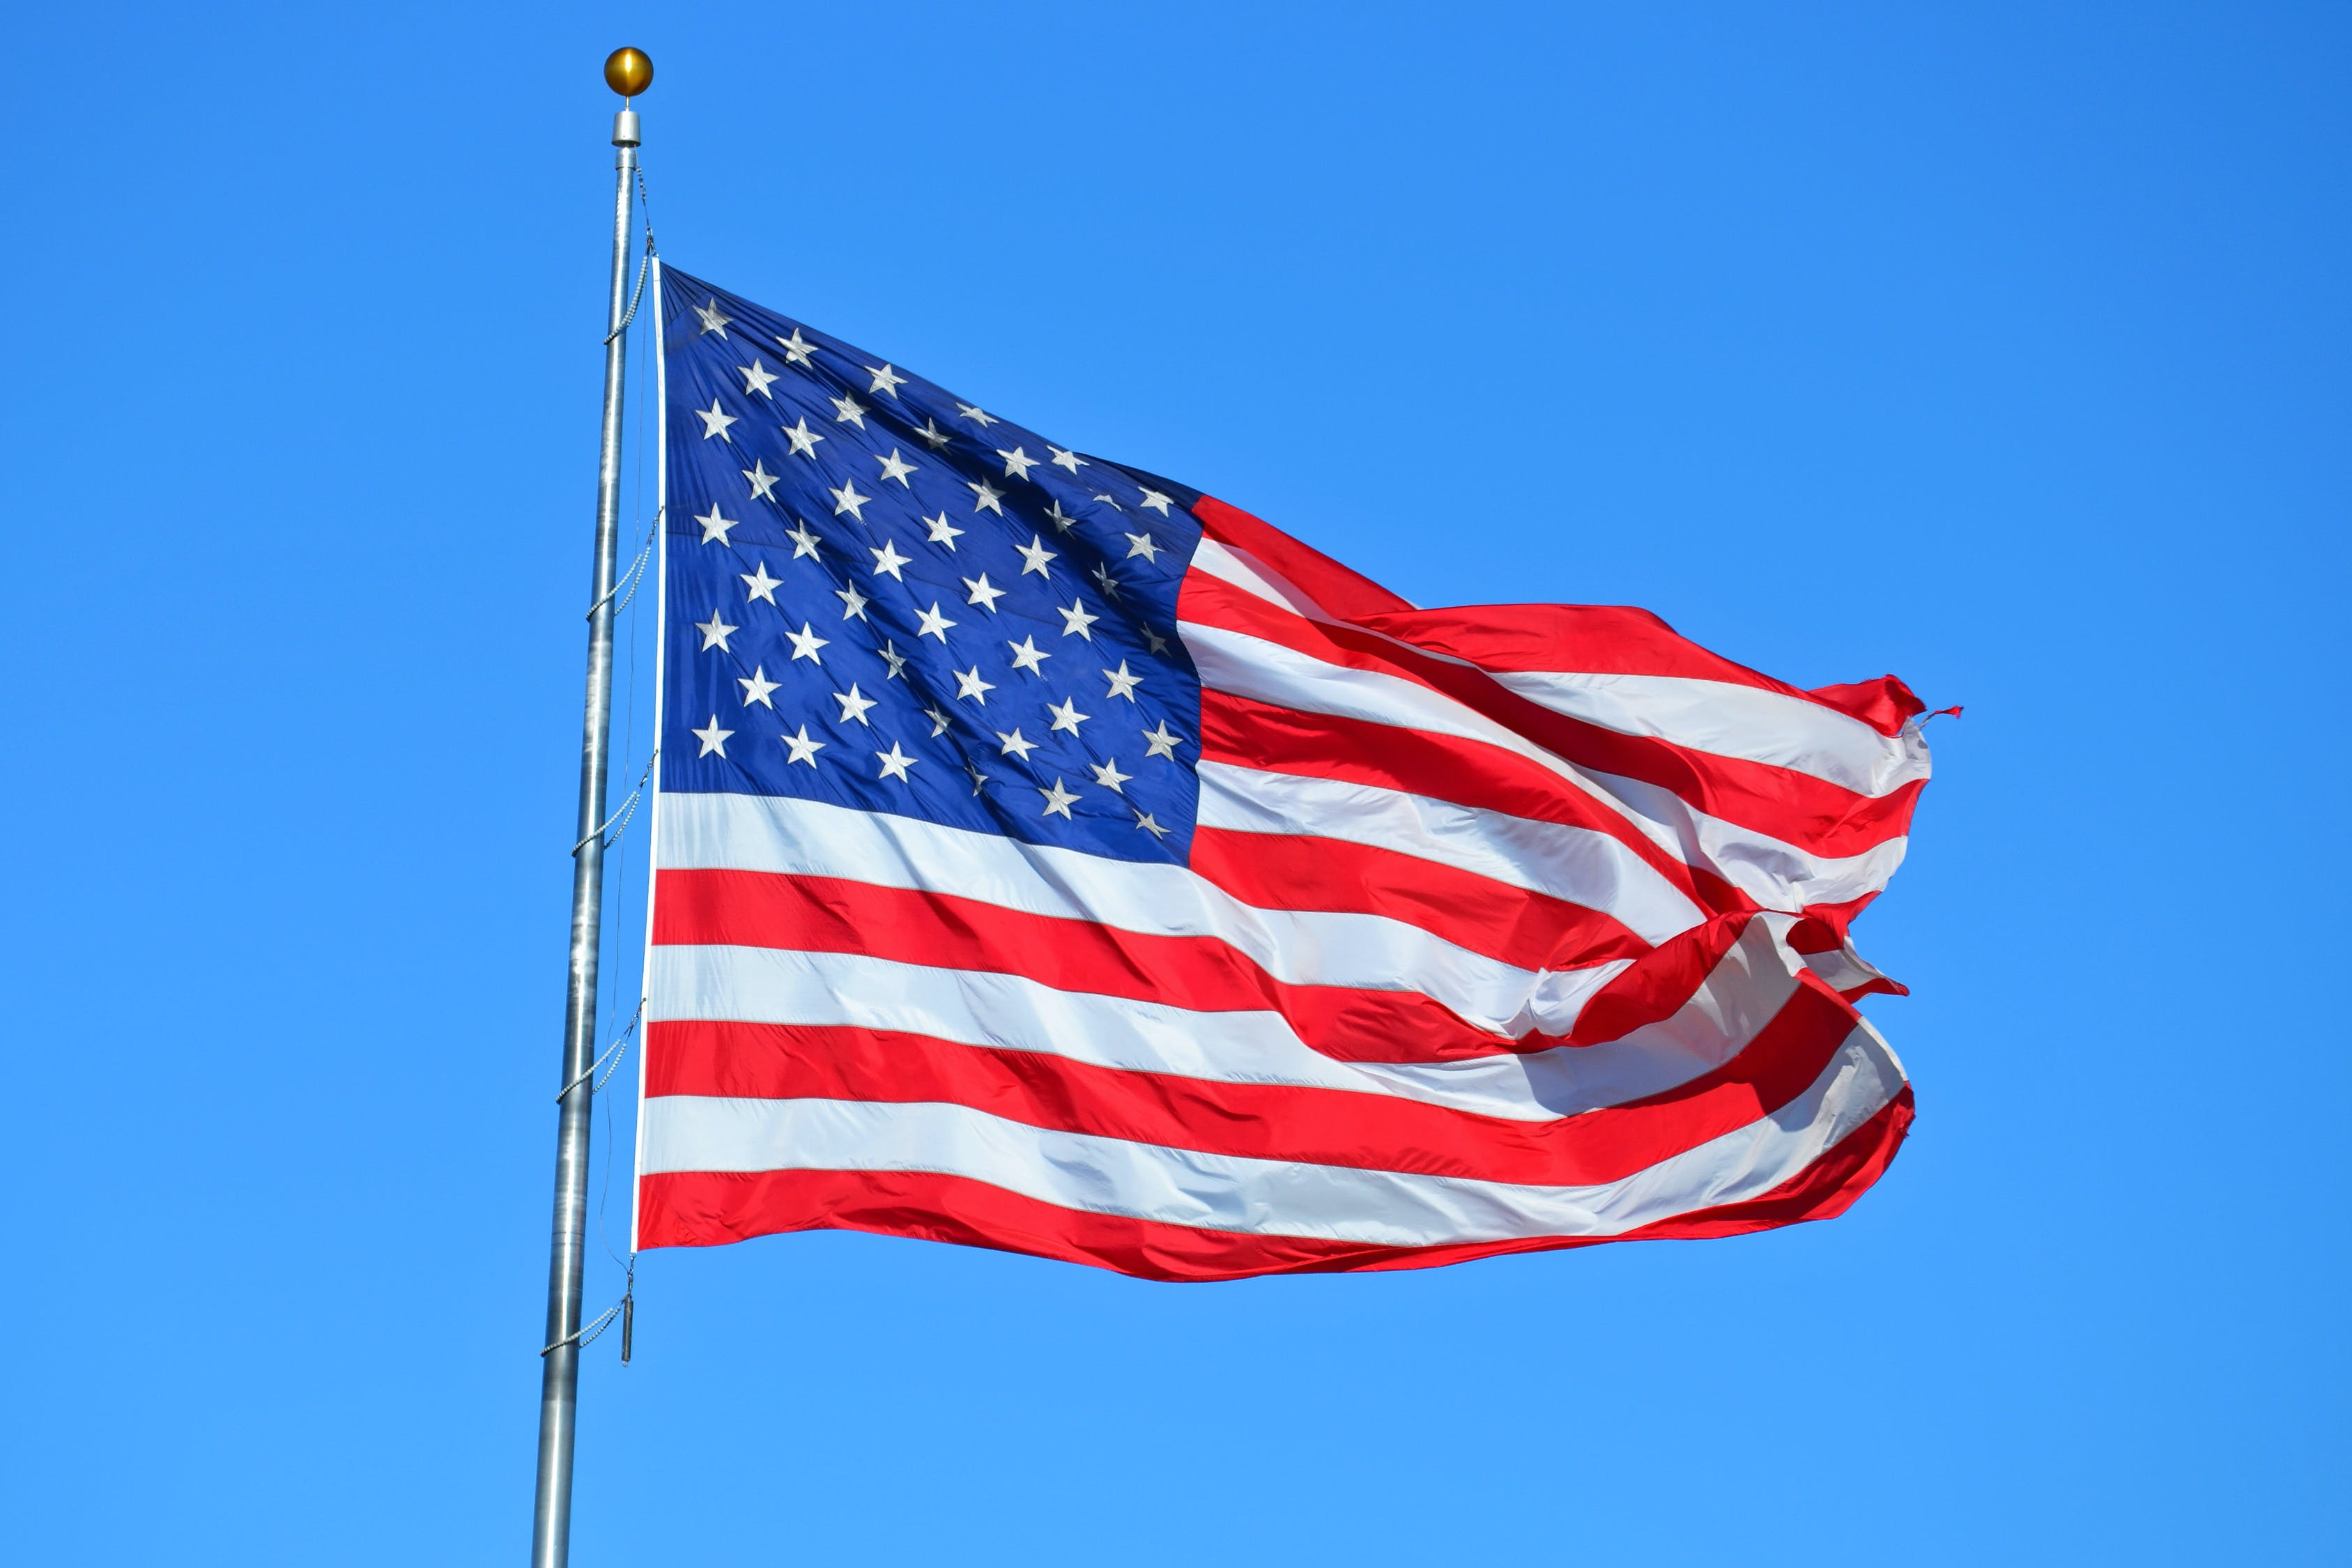 The US Flag flying in front of the bright blue sky